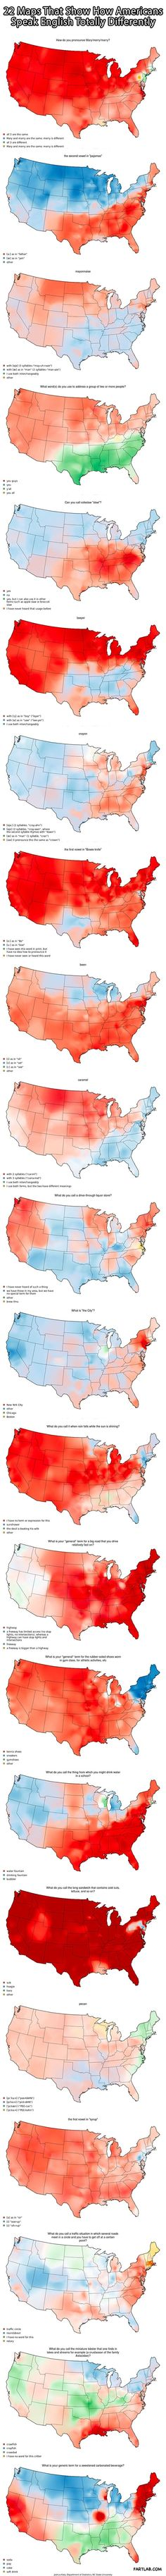 Americans Speak English Totally Differently From Each Other